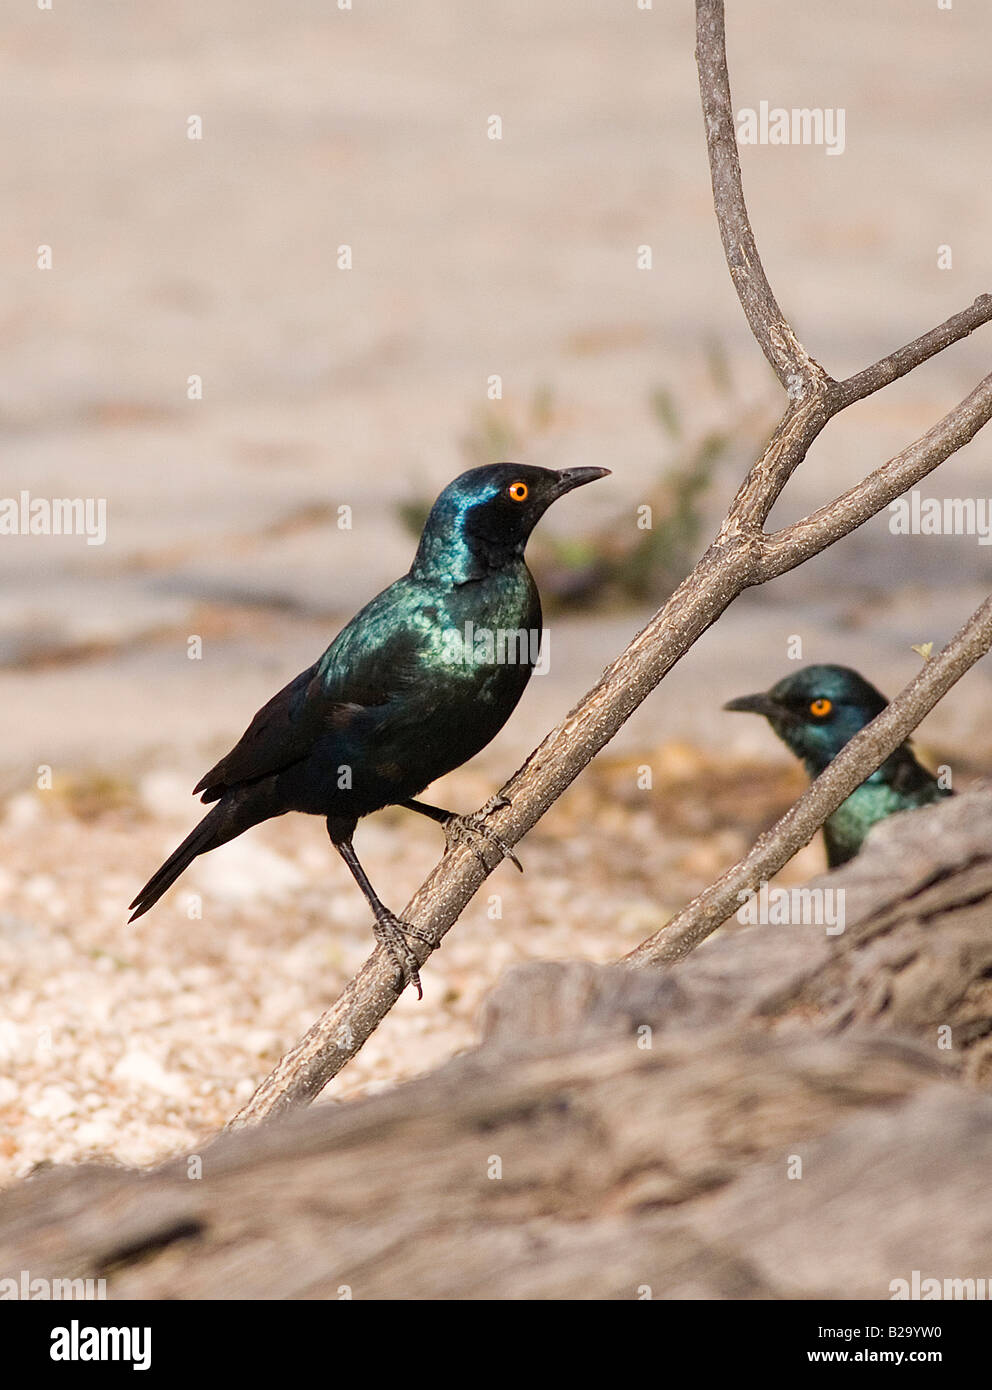 BIRDS Ref WP ABB 1149DFWP ABB 1149DF Compulsory Credit World Pictures Photoshot - Stock Image